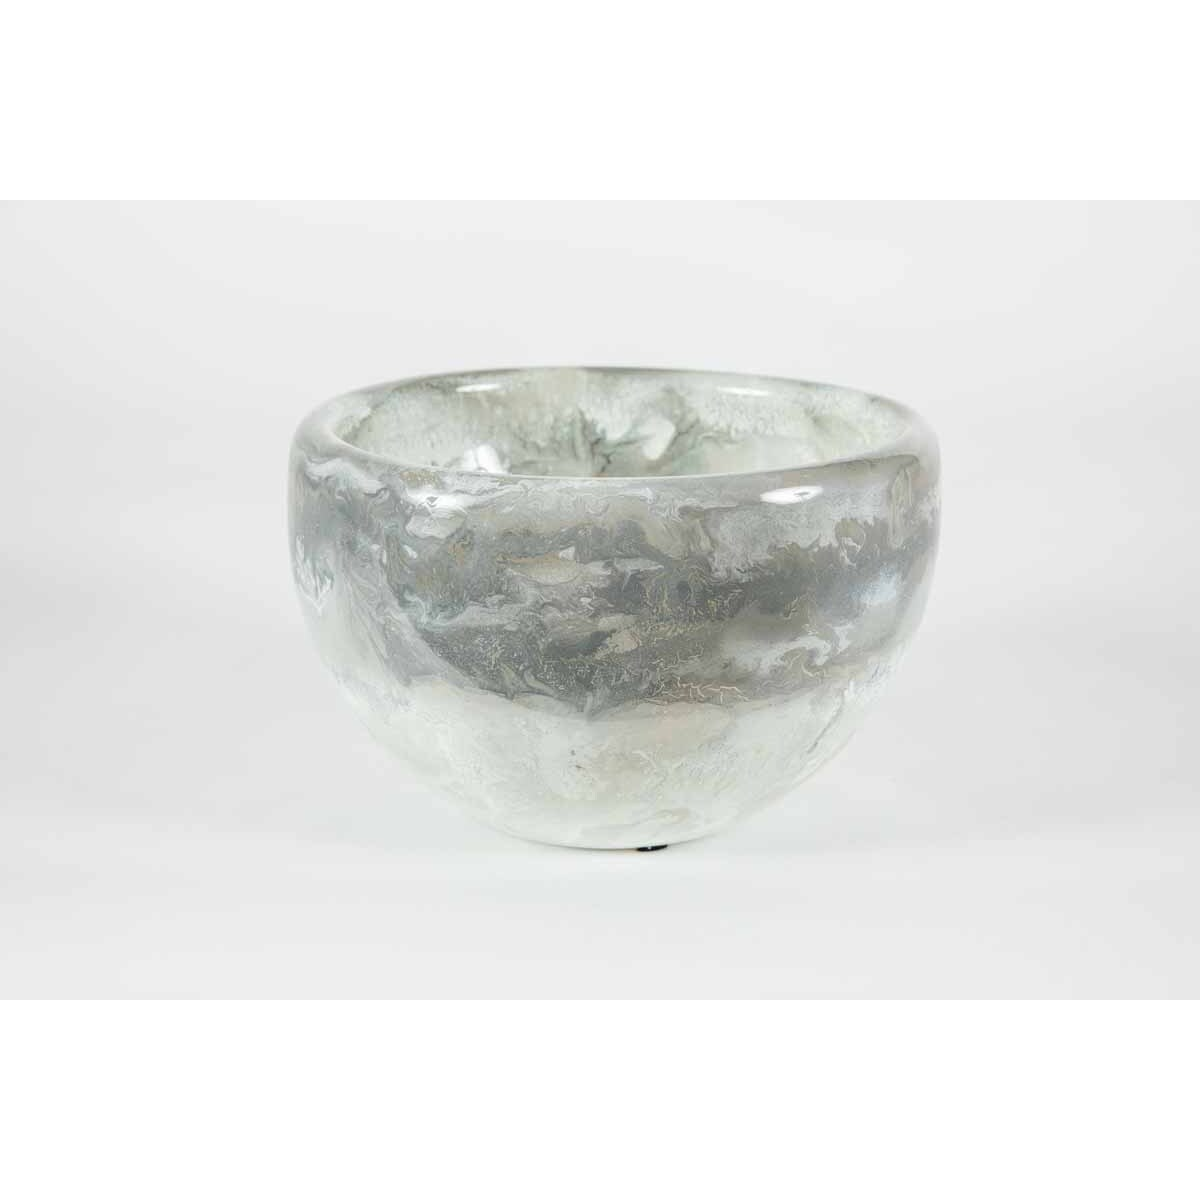 Double Sided Bowl in Thundering Clouds Finish